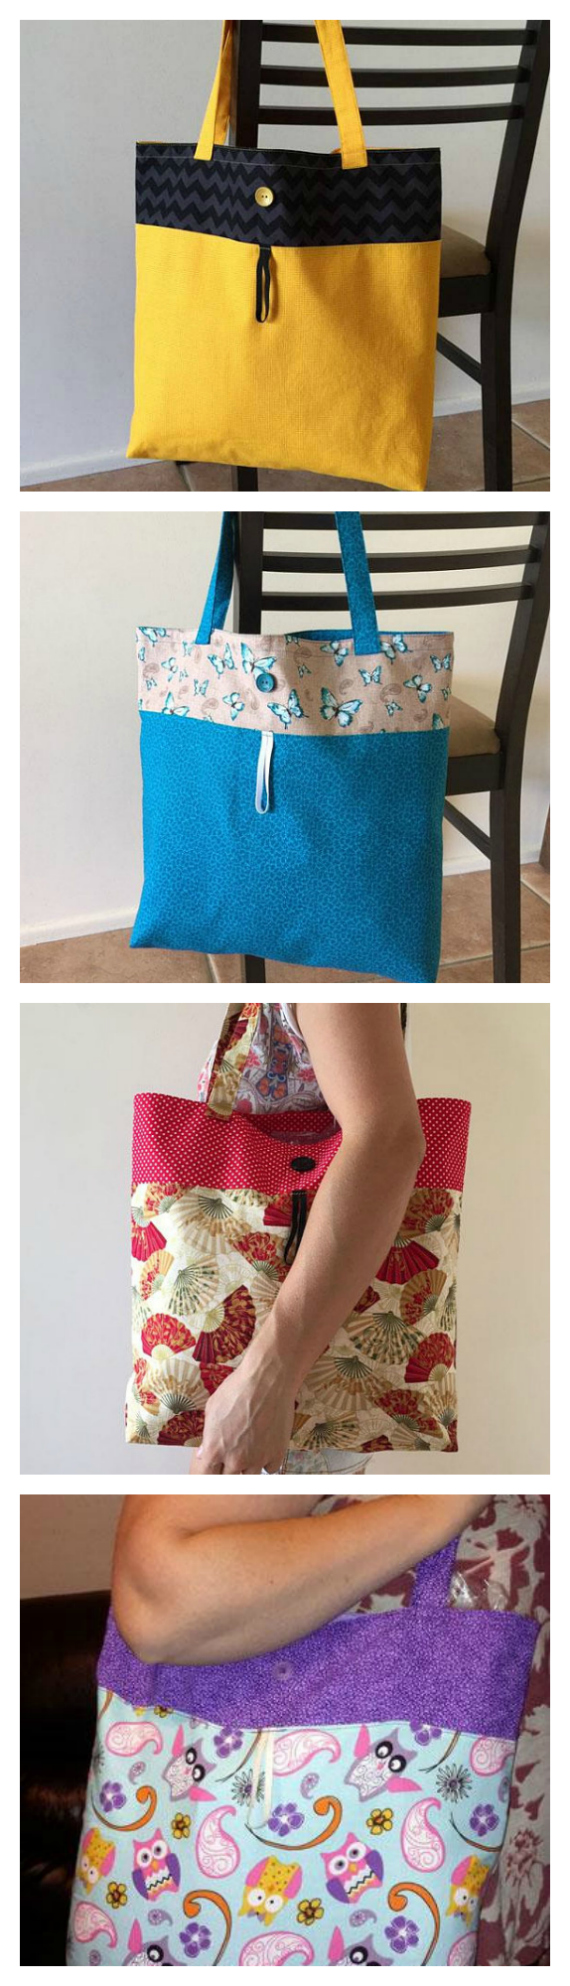 If you want a Reusable Grocery Bag that stands out from the crowd, then this the pdf pattern that you need to get. The Reusable Grocery Bag is an easy to follow sewing pattern to create your own reusable grocery bag or market tote. These bags have a multitude of uses and roll up small enough to tuck away discreetly in the bottom of your handbag until needed. It's the perfect reusable shopping bag pattern. The finished bag is large in size and the pattern comes with two options to make either a fully lined bag or an unlined bag.